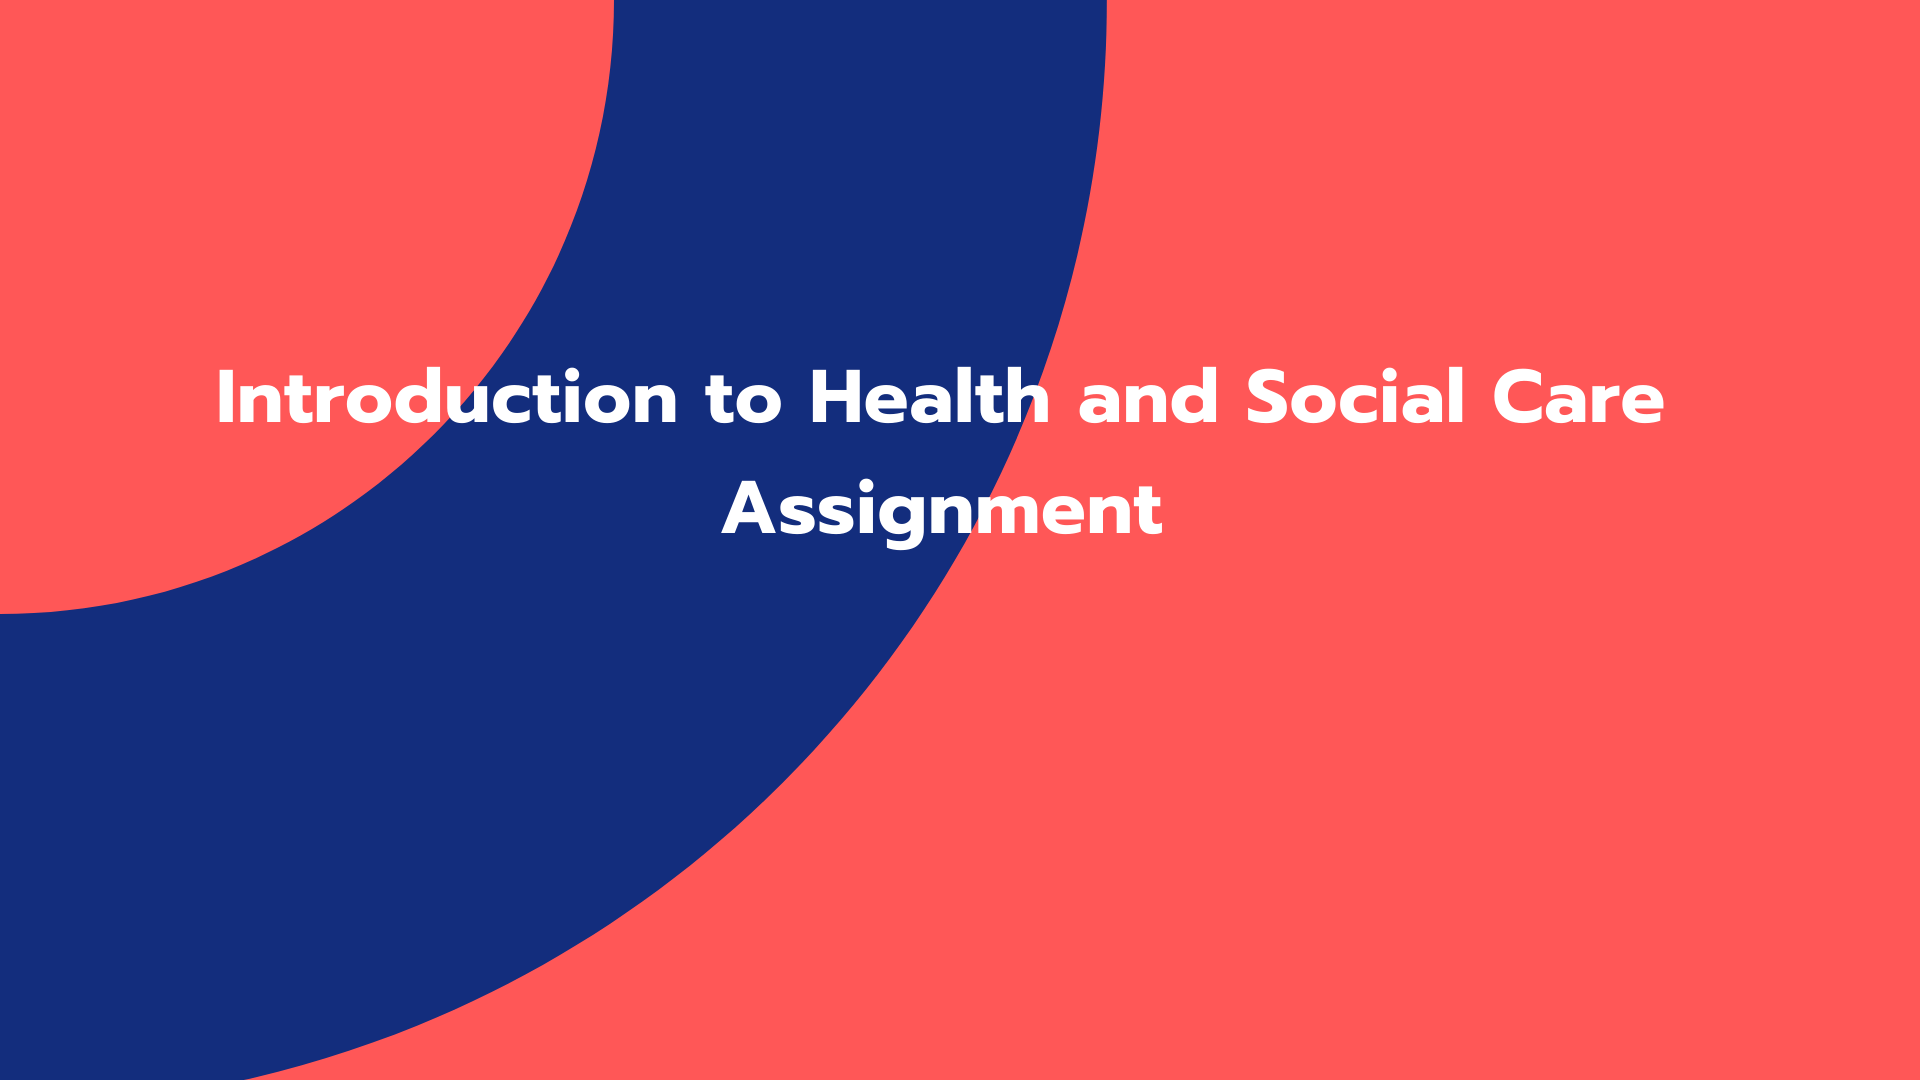 Introduction to Health and Social Care Assignment